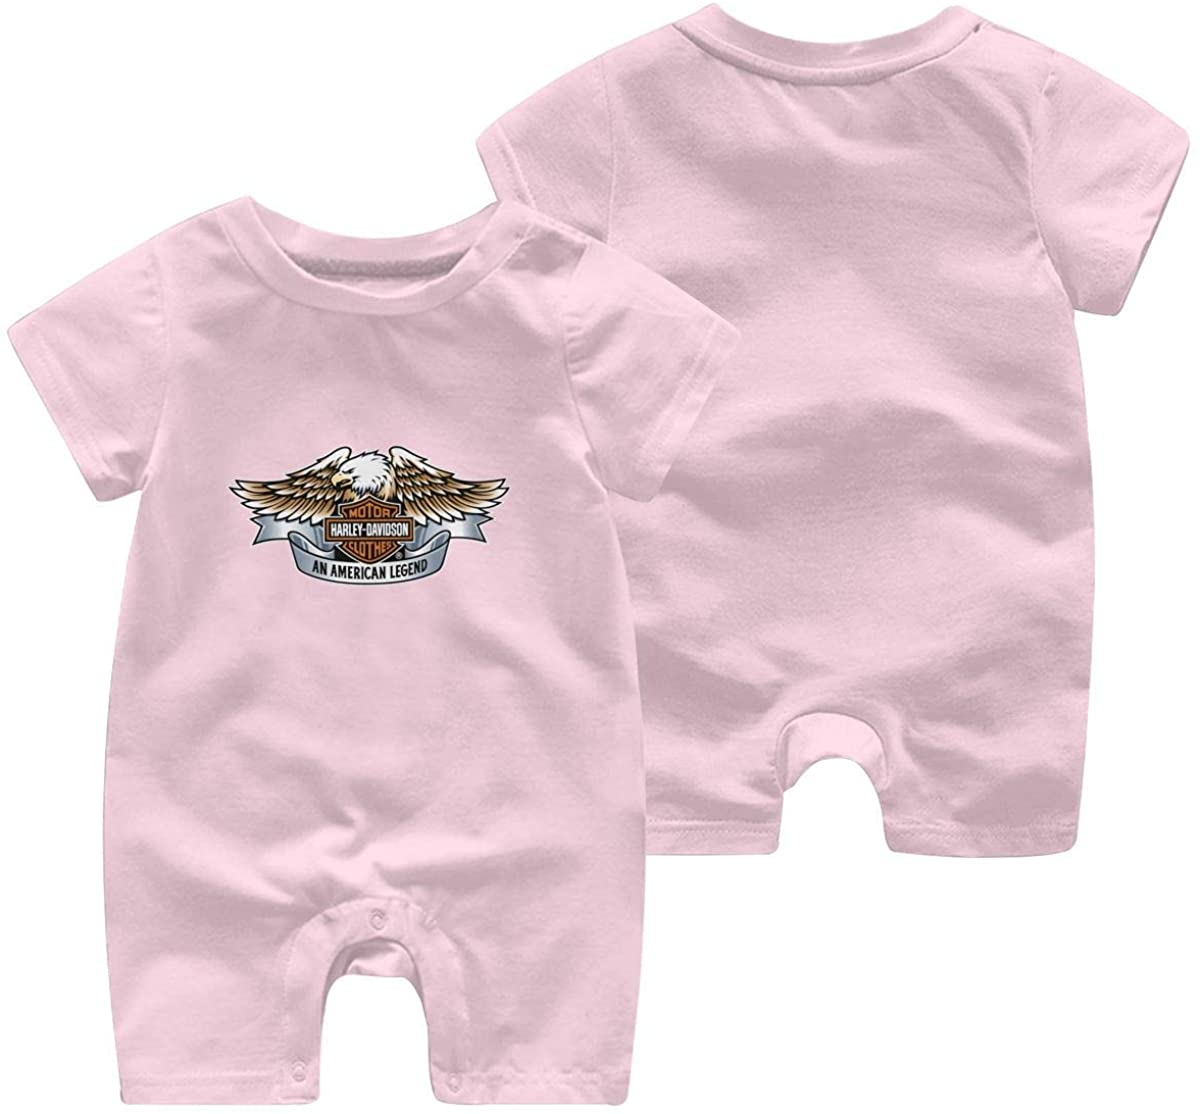 Harley Davidson One Piece Outfits Baby Solid Color Rompers with Button Kids Short Sleeve Playsuit Jumpsuits Cotton Clothing 18 Months Pink